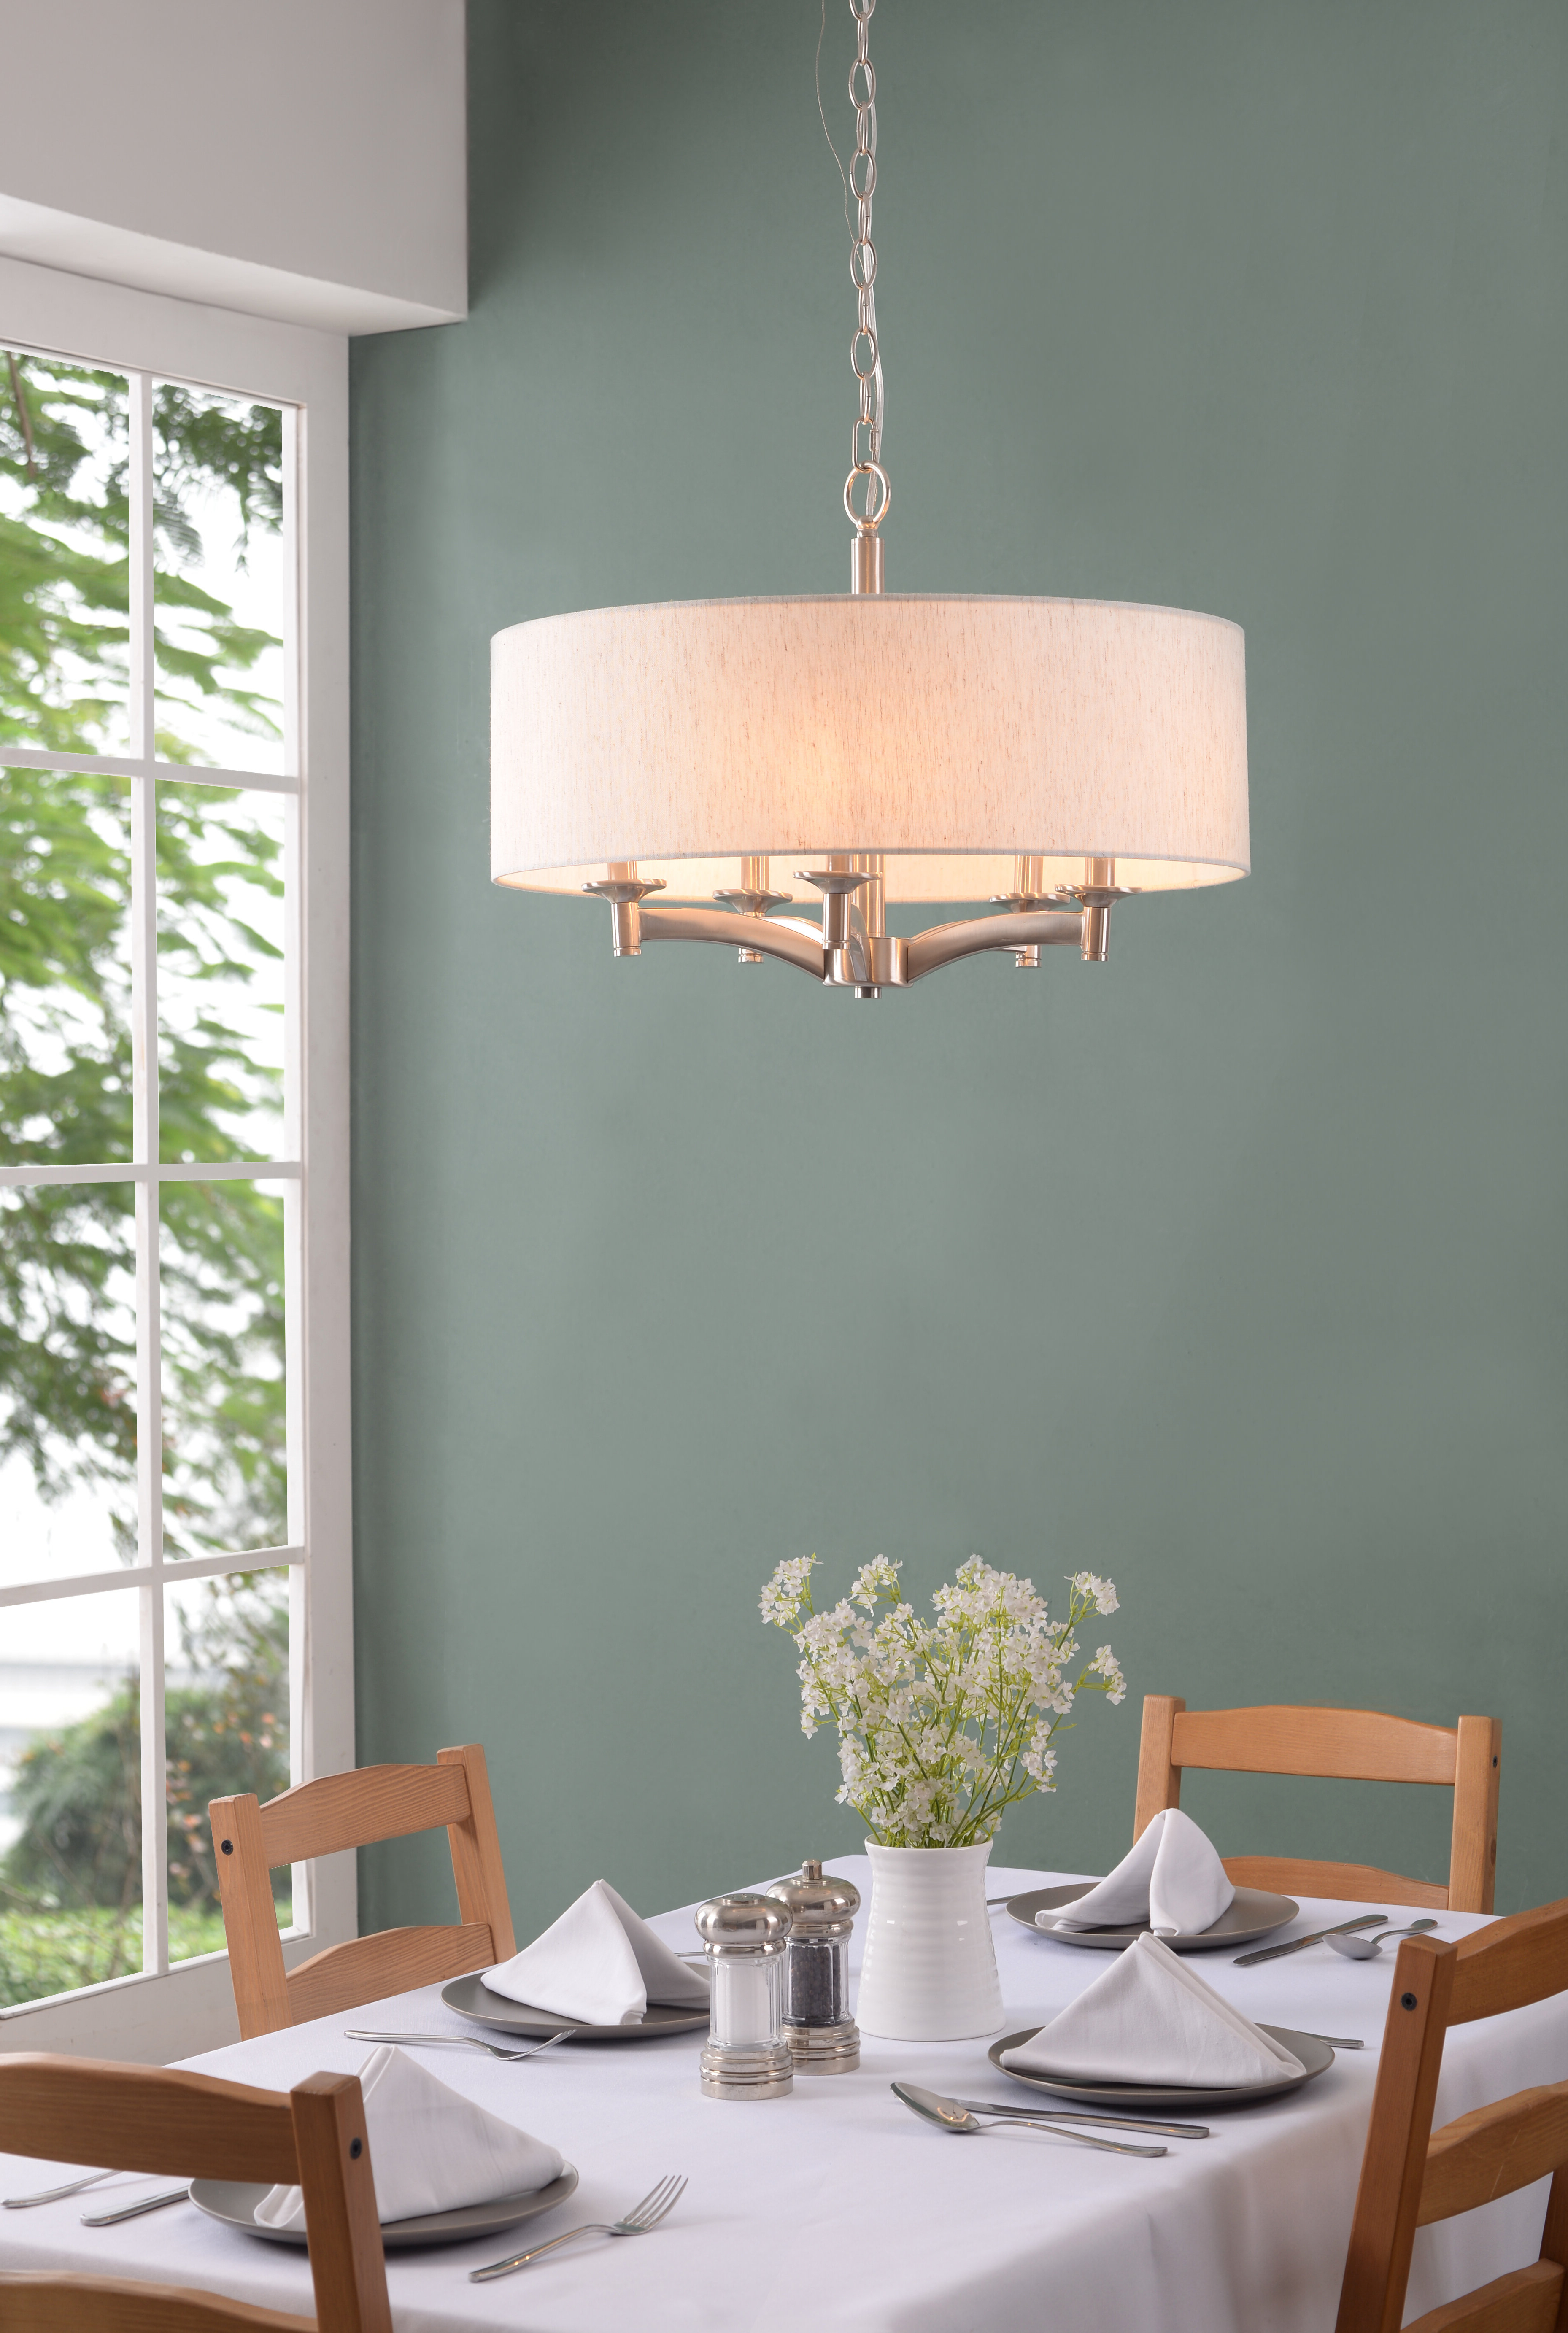 2019 Harlan 5 Light Drum Chandelier With Harlan 5 Light Drum Chandeliers (Gallery 3 of 20)